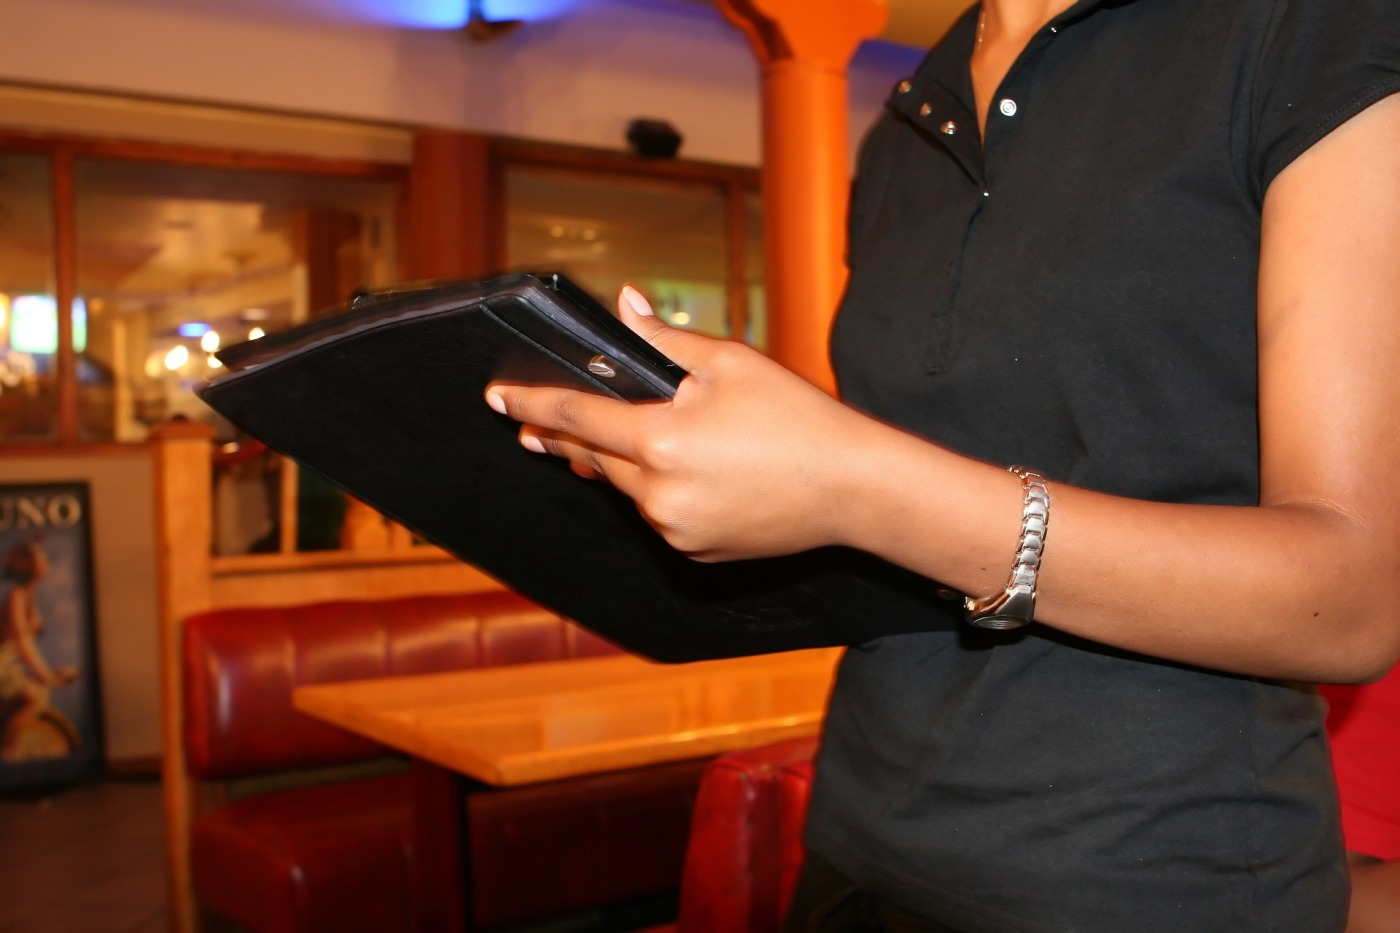 #waitresses - TopicsWithPassion.blog